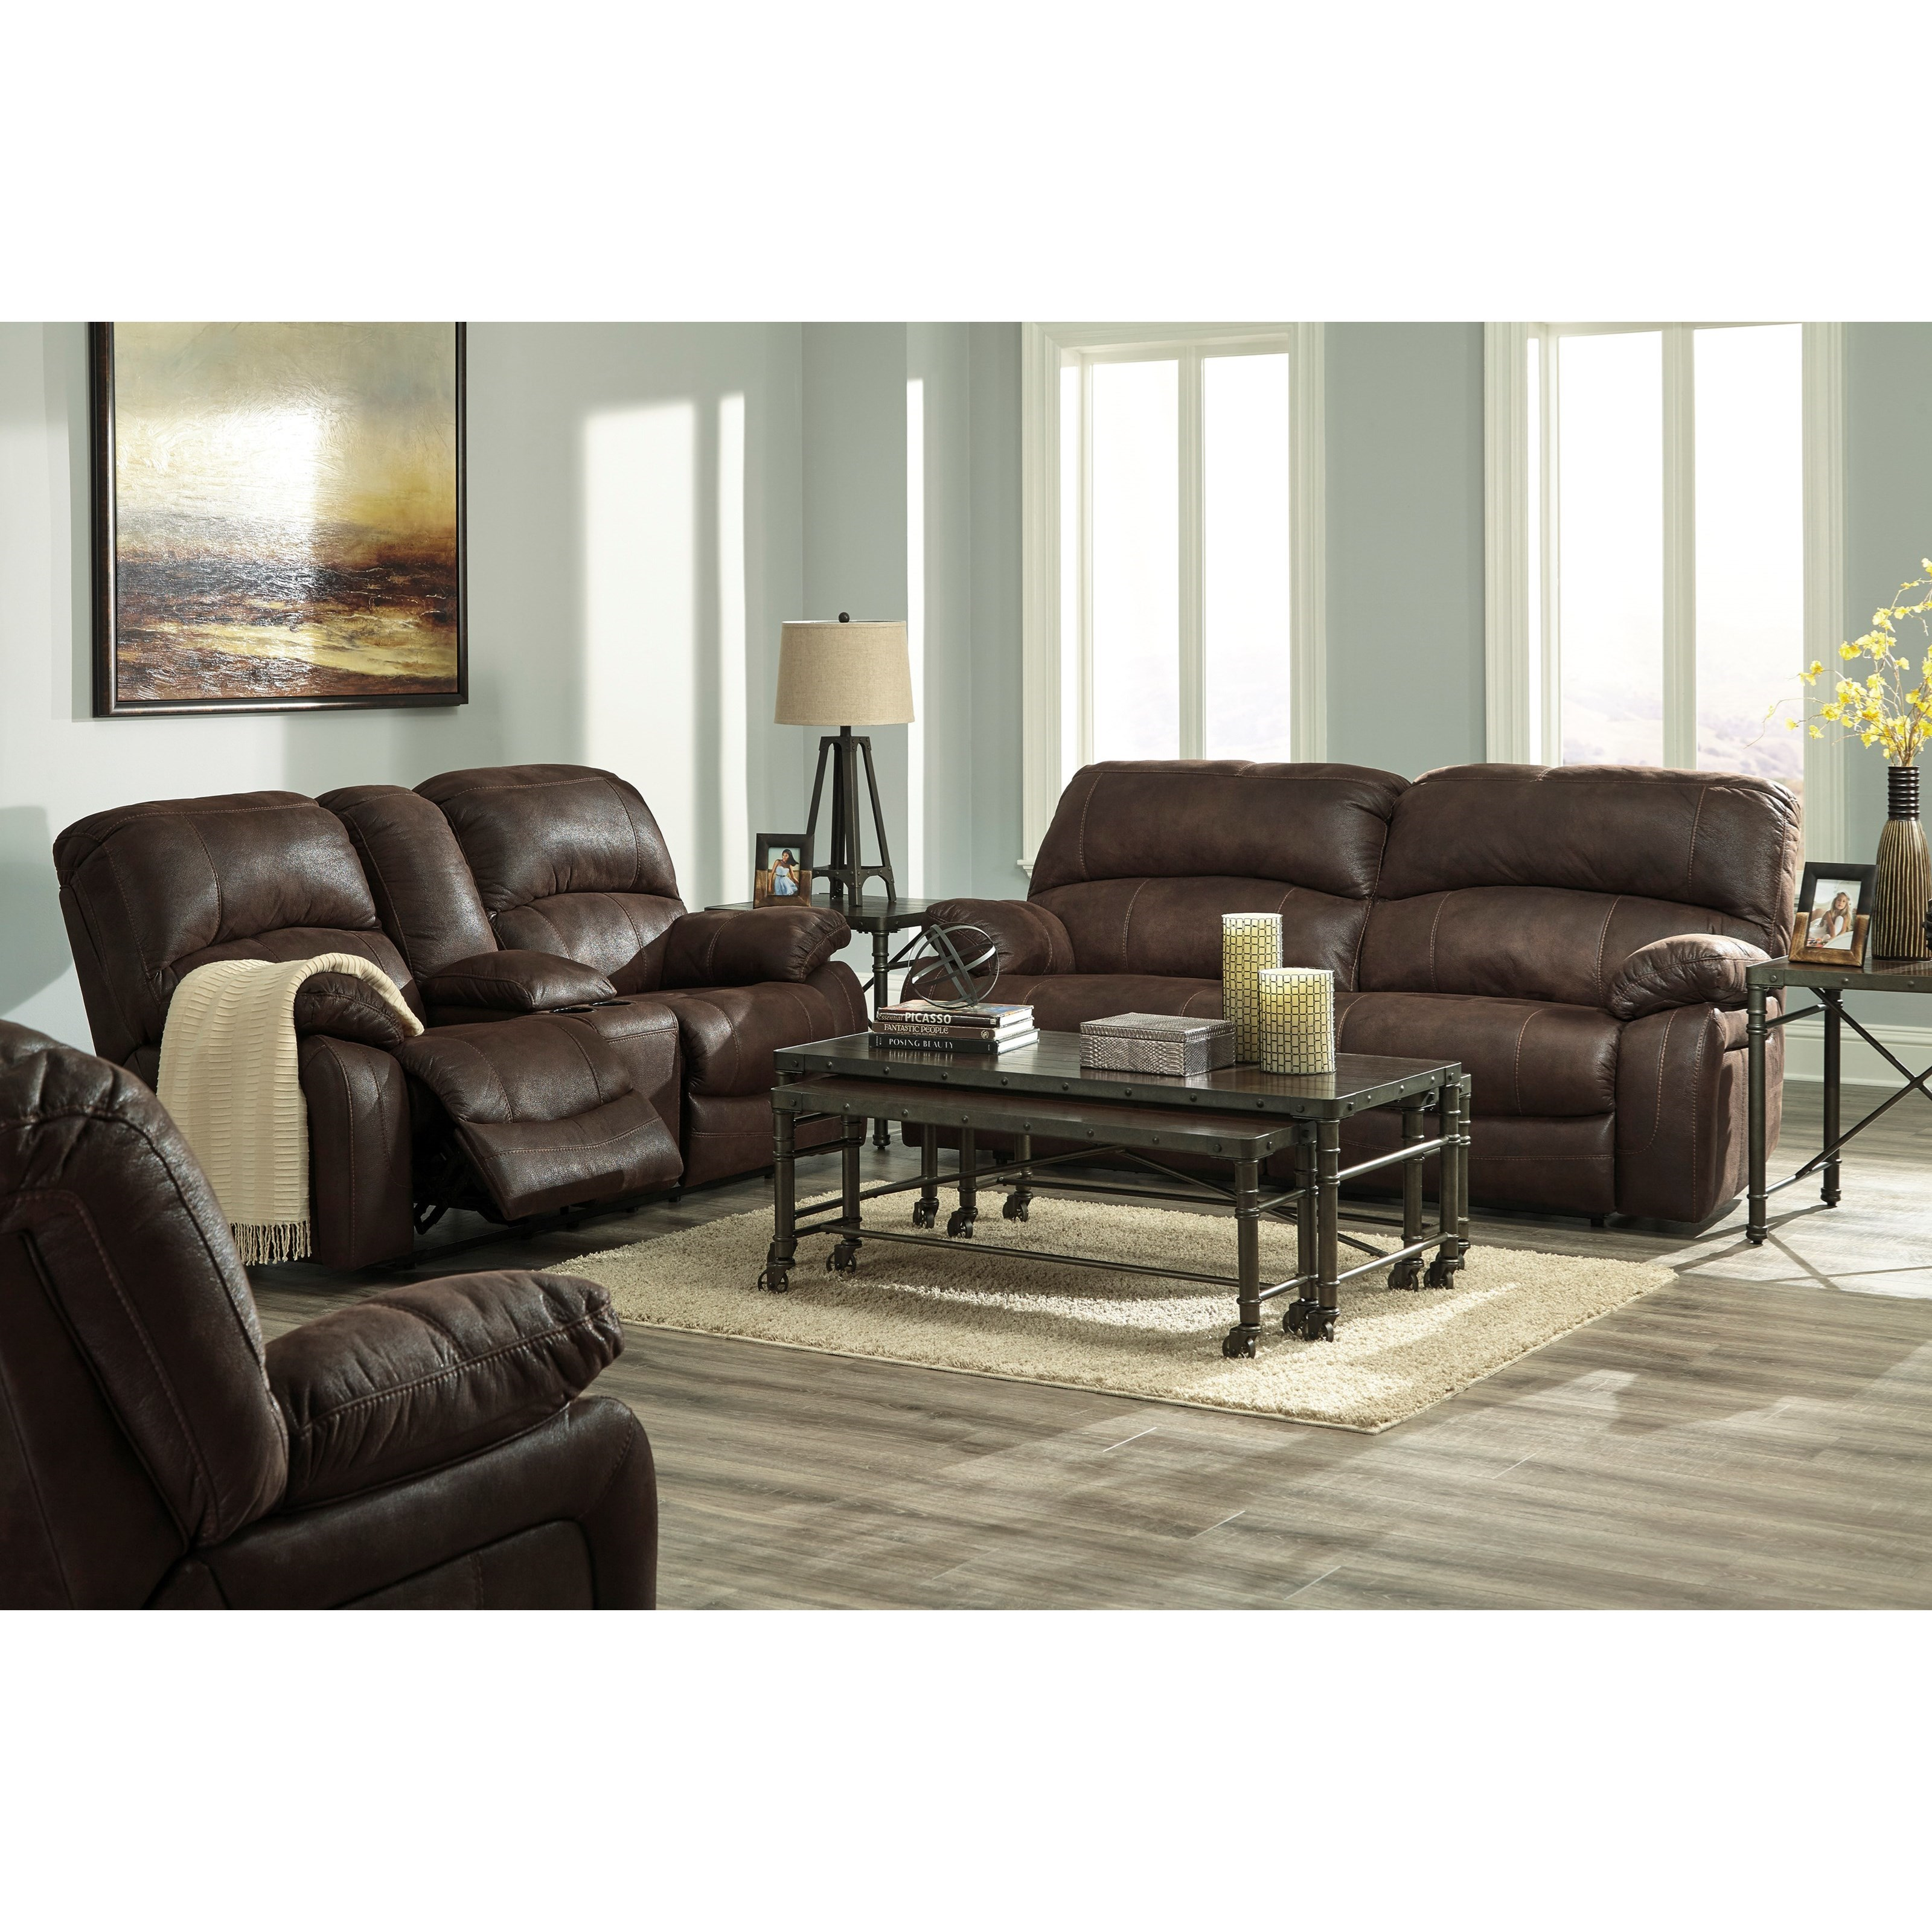 signature design by ashley zavier 4290143 glider reclining loveseat w console in faux brown. Black Bedroom Furniture Sets. Home Design Ideas